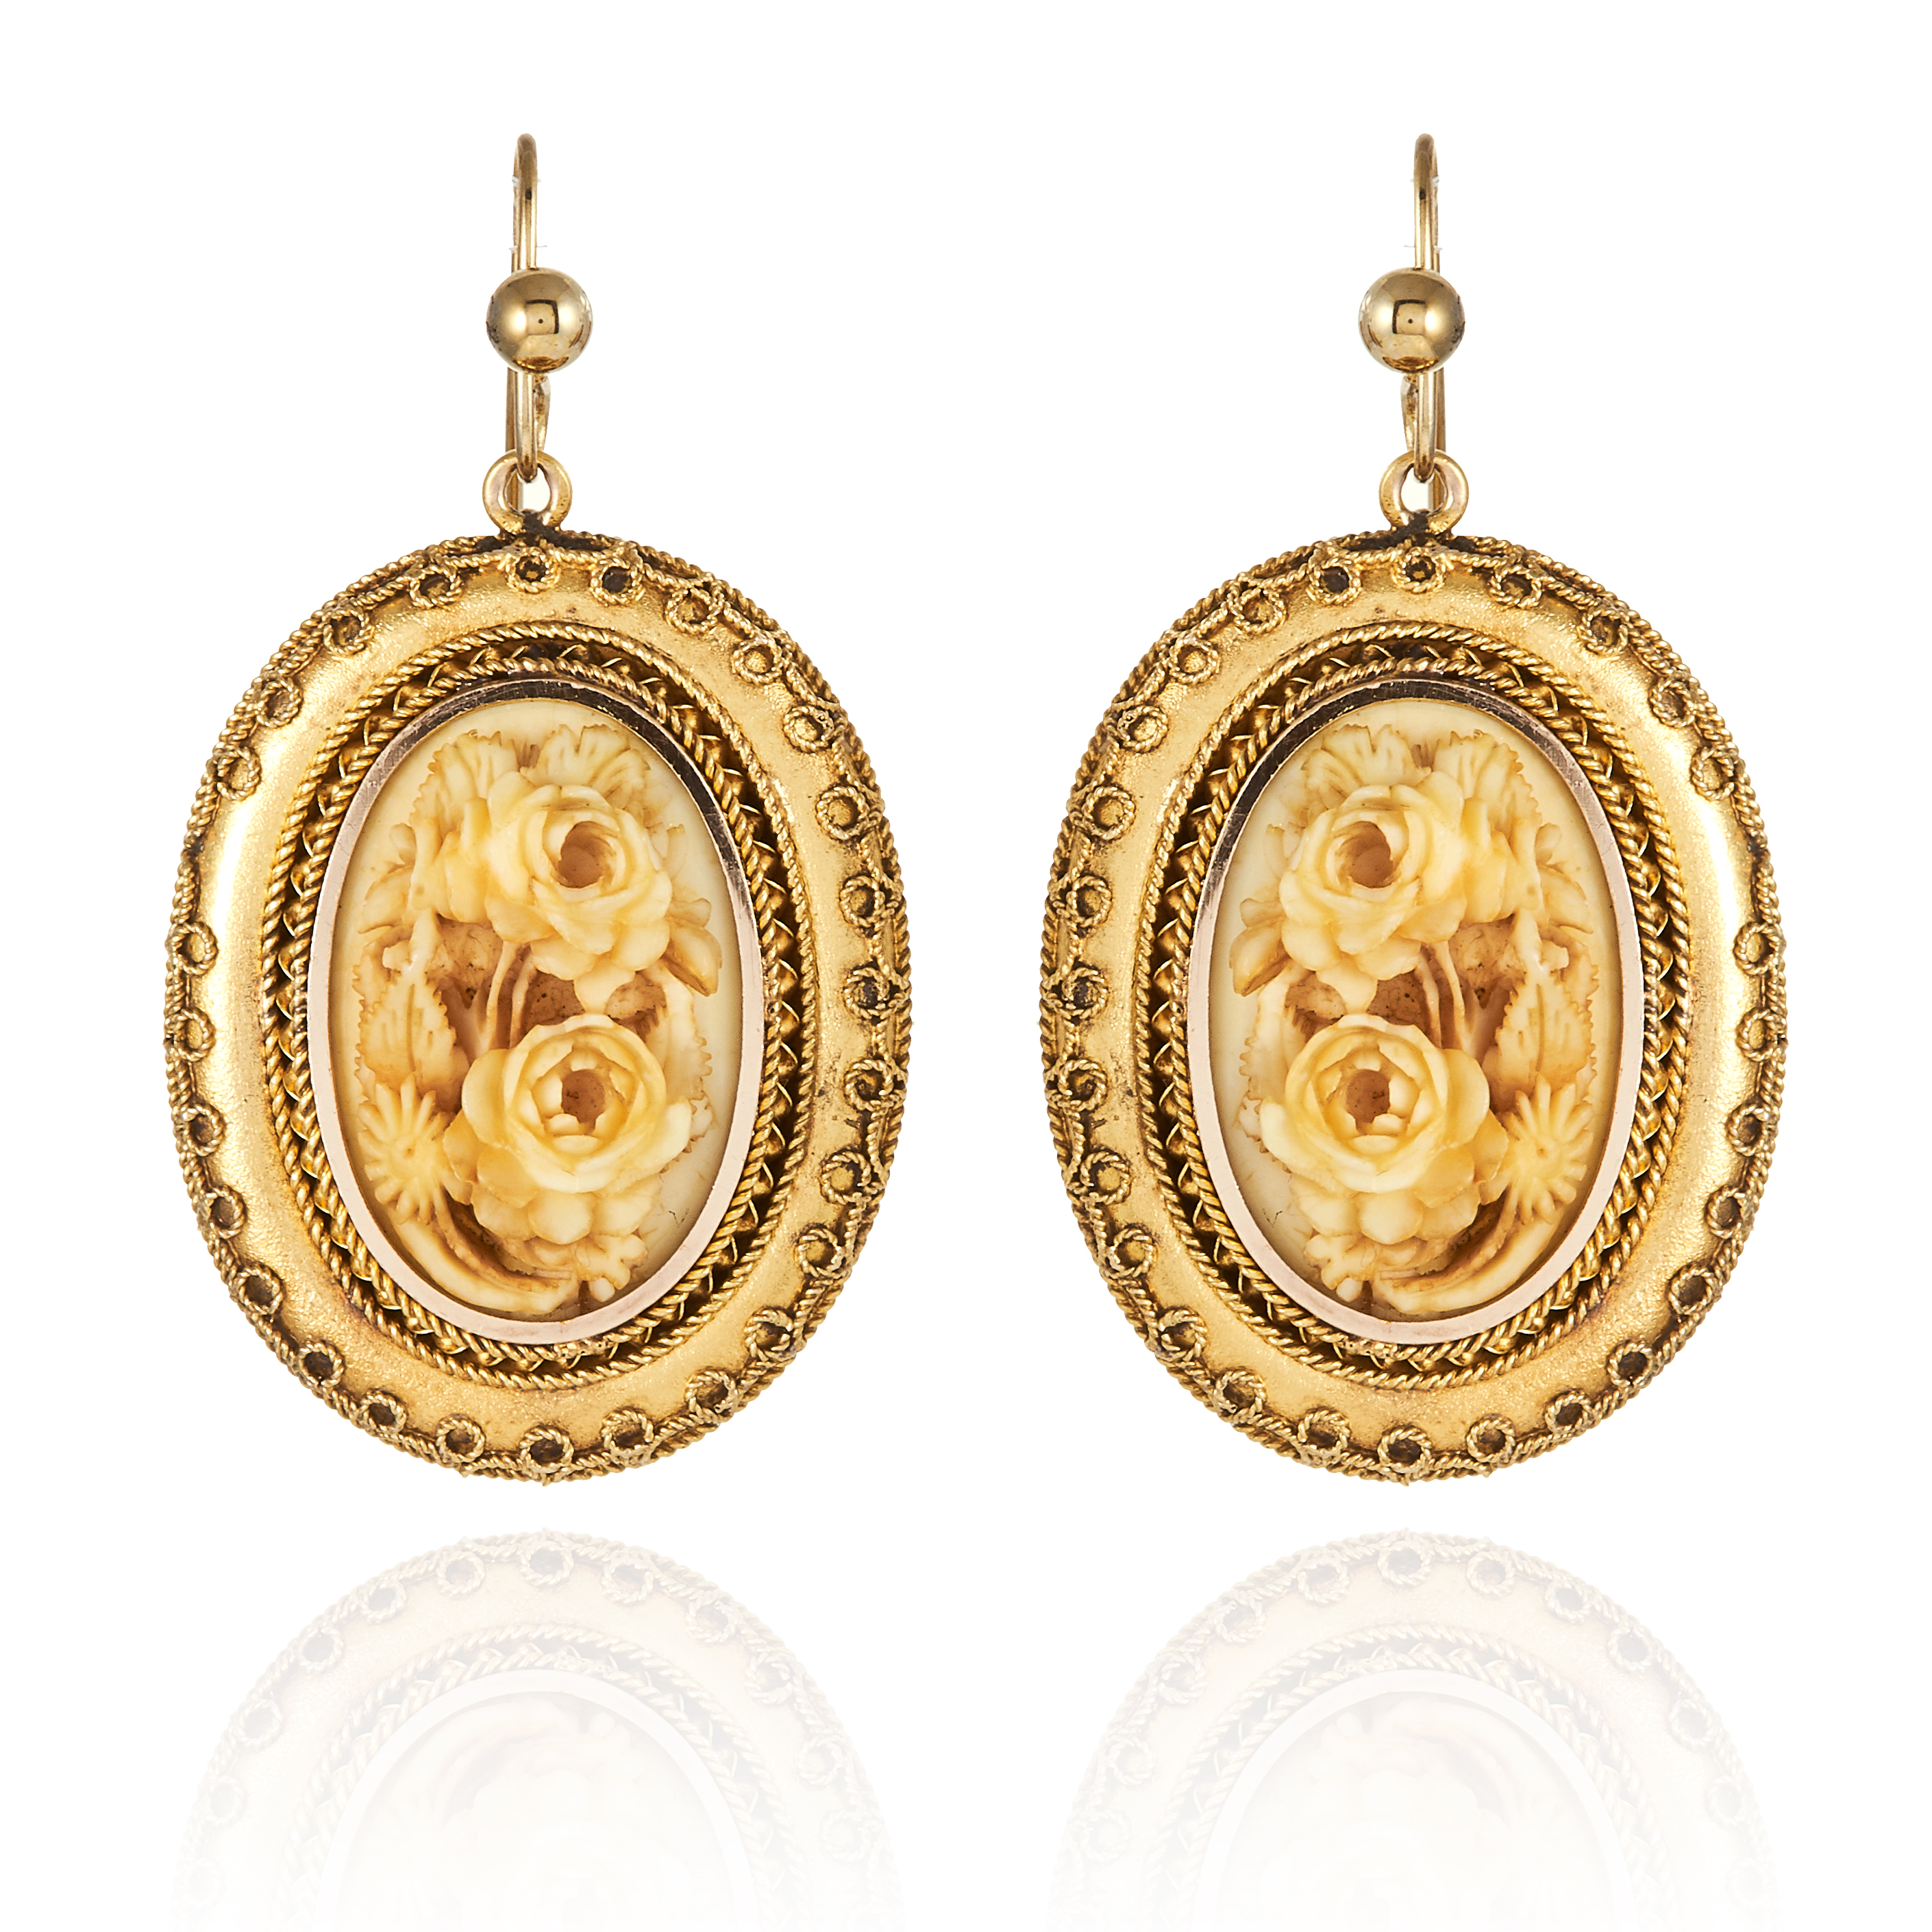 Los 44 - A PAIR OF ANTIQUE CARVED IVORY EARRINGS, in high carat yellow gold, comprising of an ornate gold